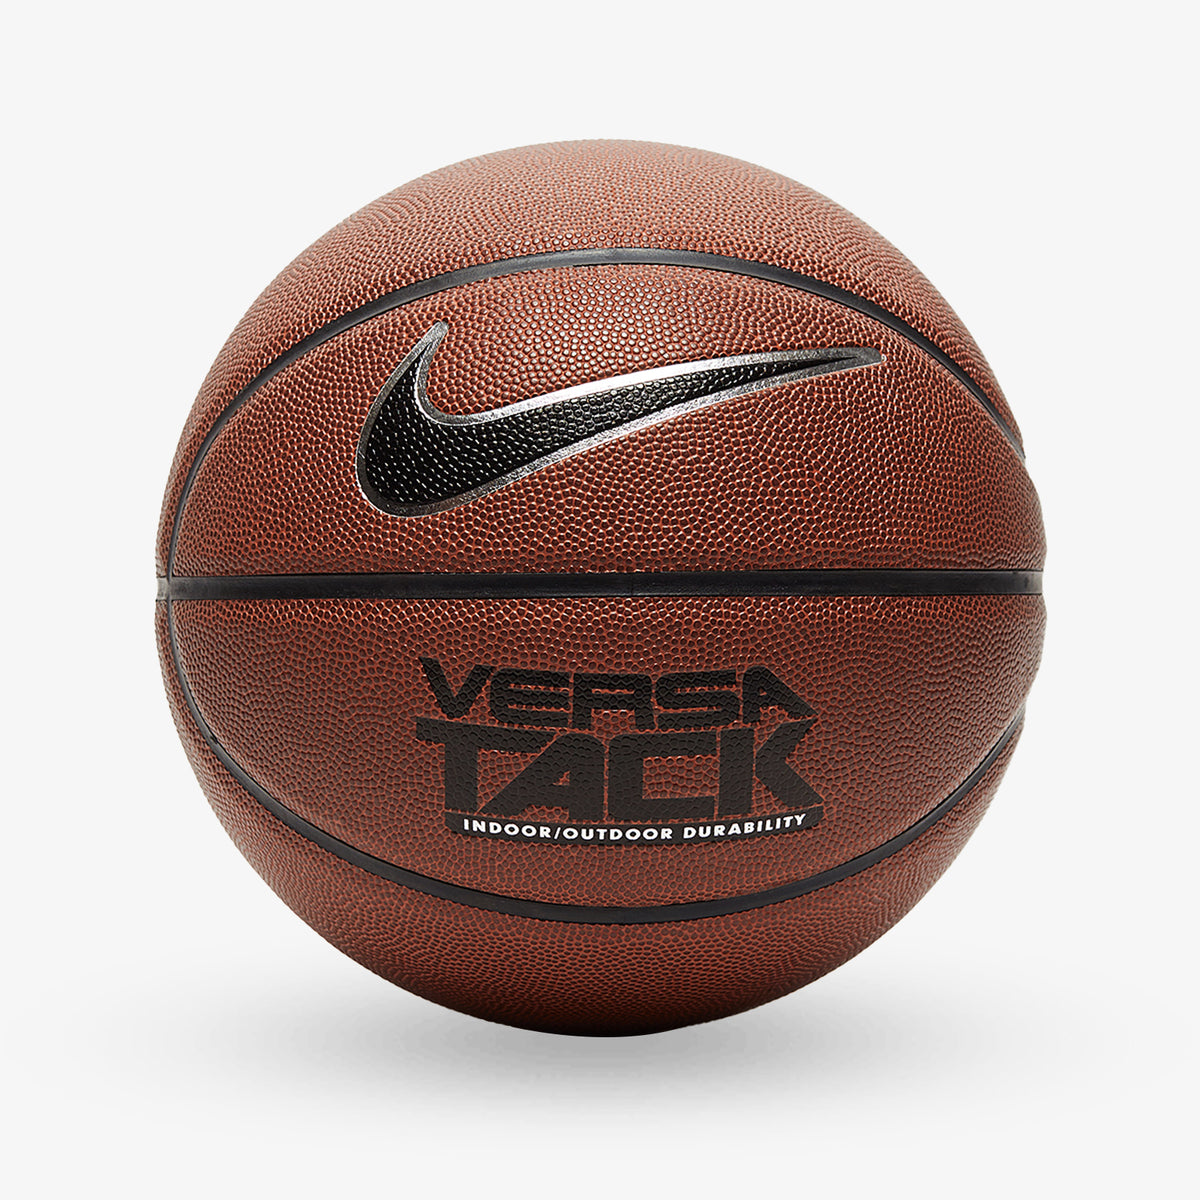 Nike Versa Tack Indoor/Outdoor Basketball - Amber/Black - Size 7